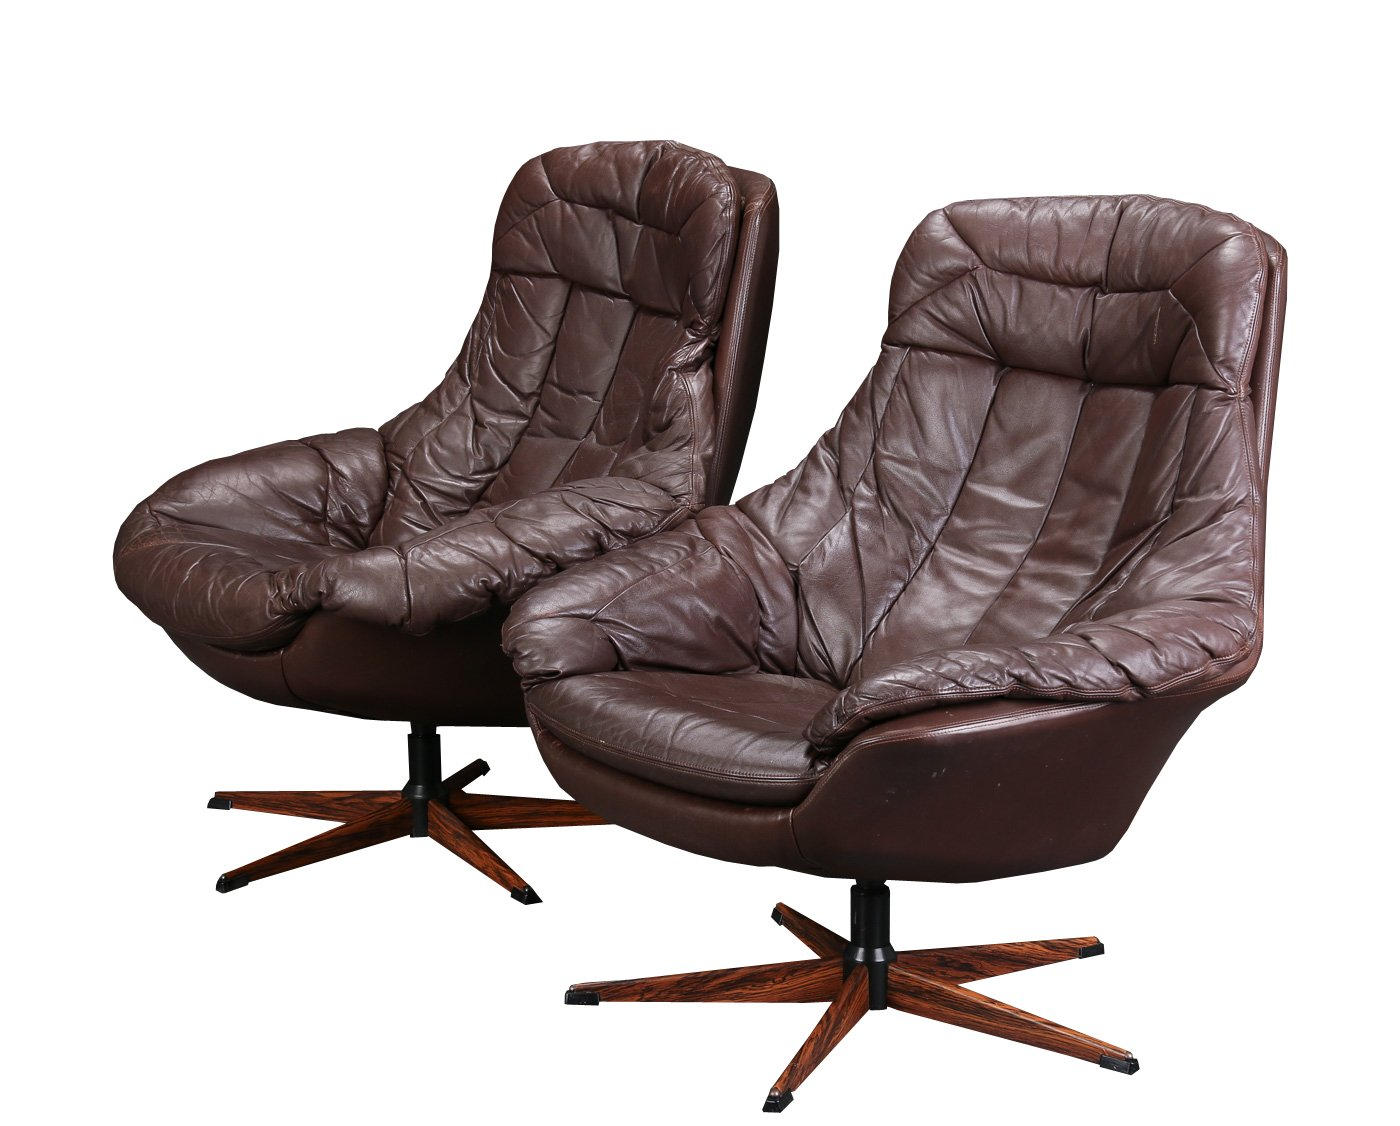 swivel chair brown fishing high banner leather by h w klein for bramin